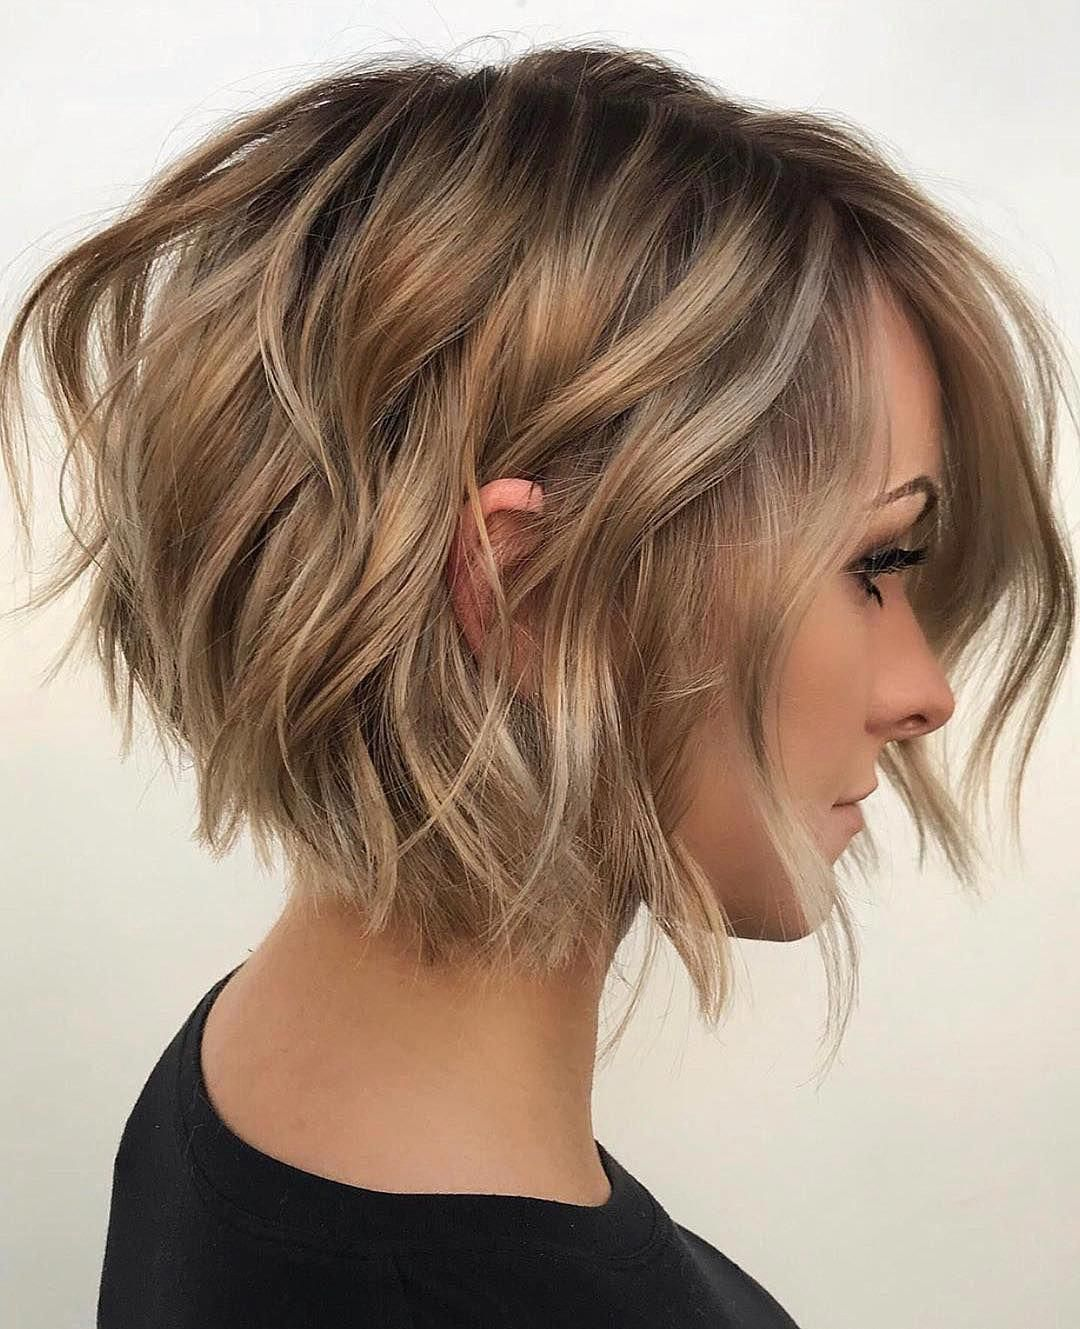 These How To Style Bob Hairstyles Are Amazing Howtostylebobhairstyles Hair Styles Short Hair With Layers Latest Short Haircuts